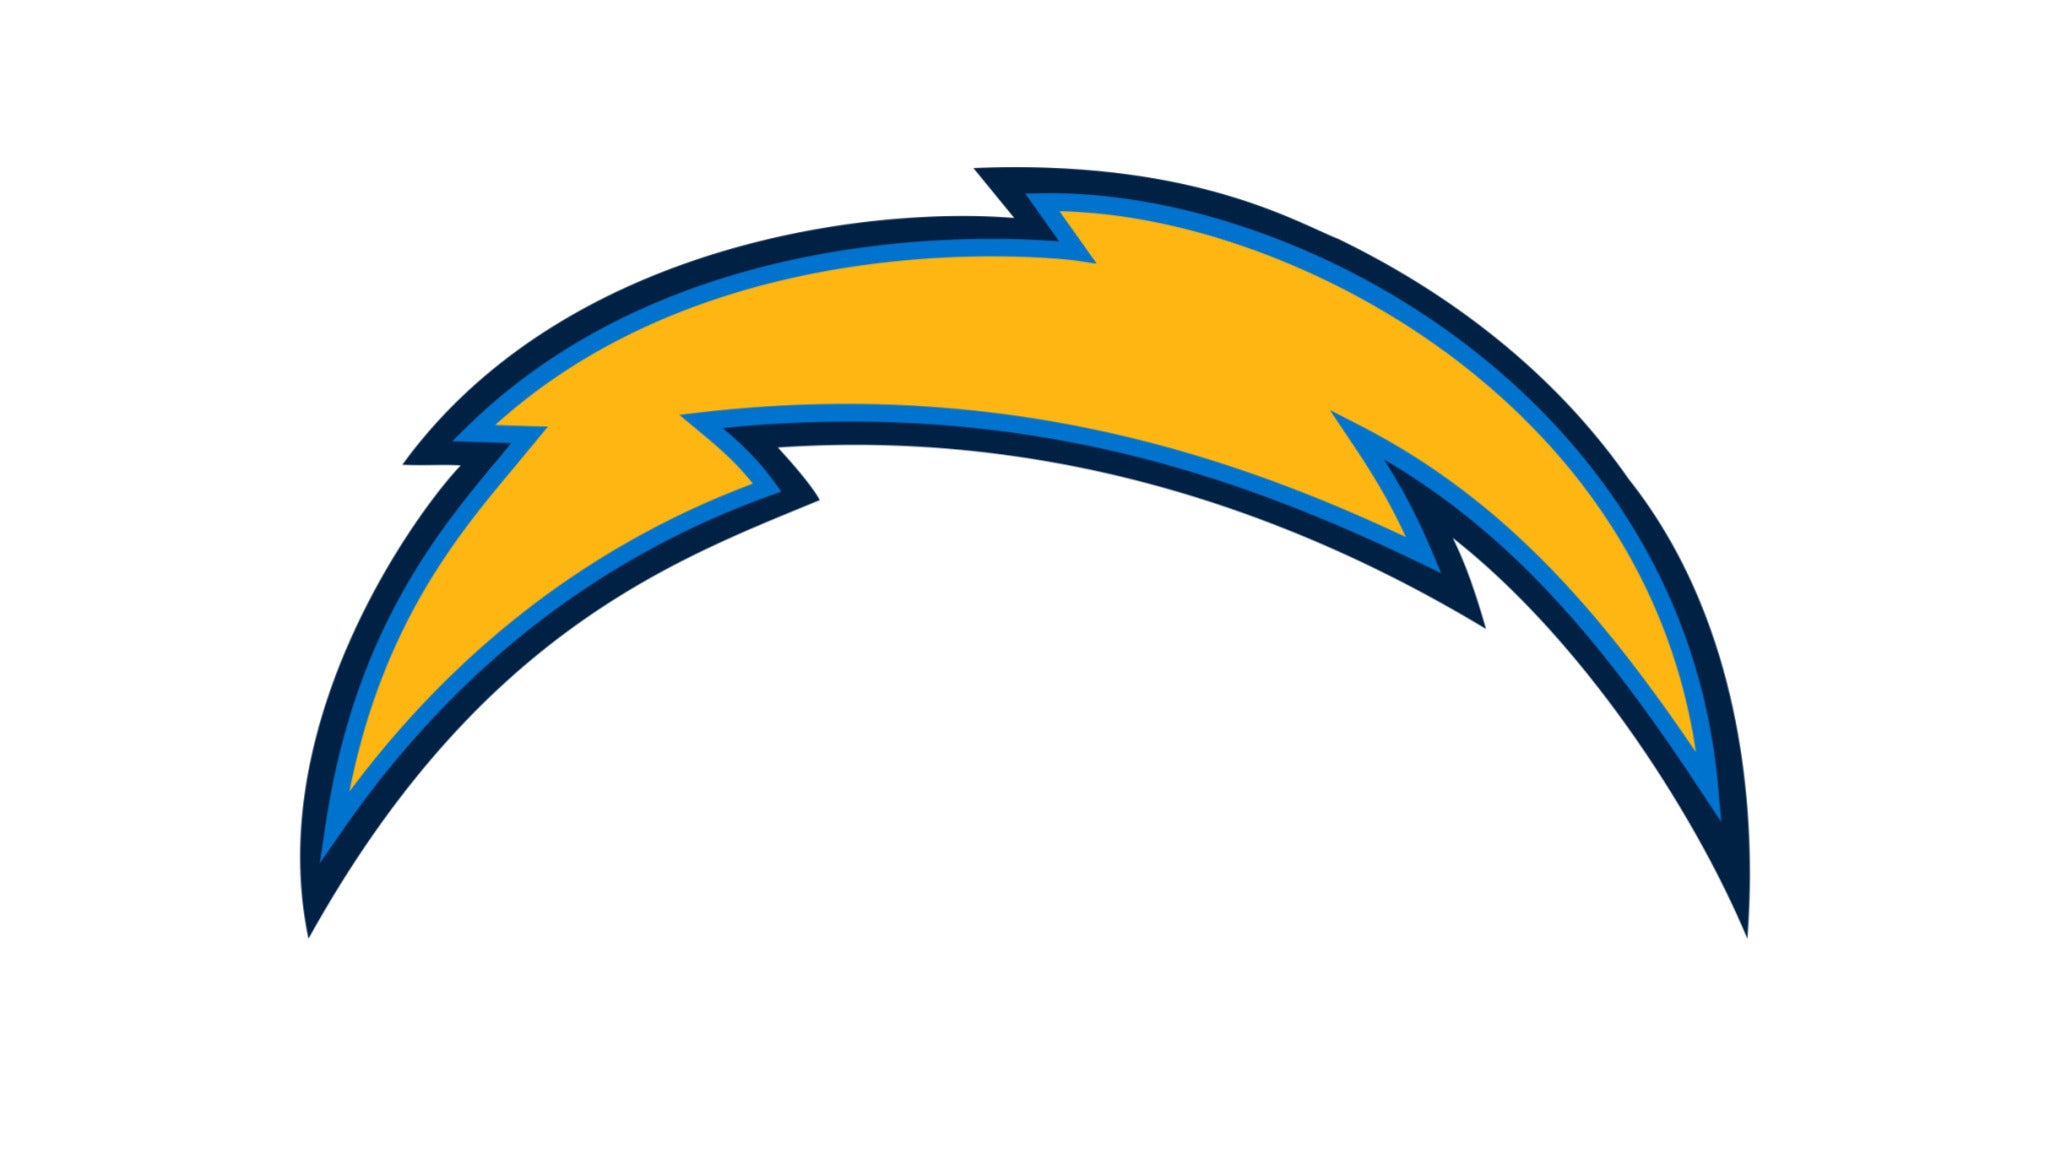 San Diego Chargers vs. New Orleans Saints